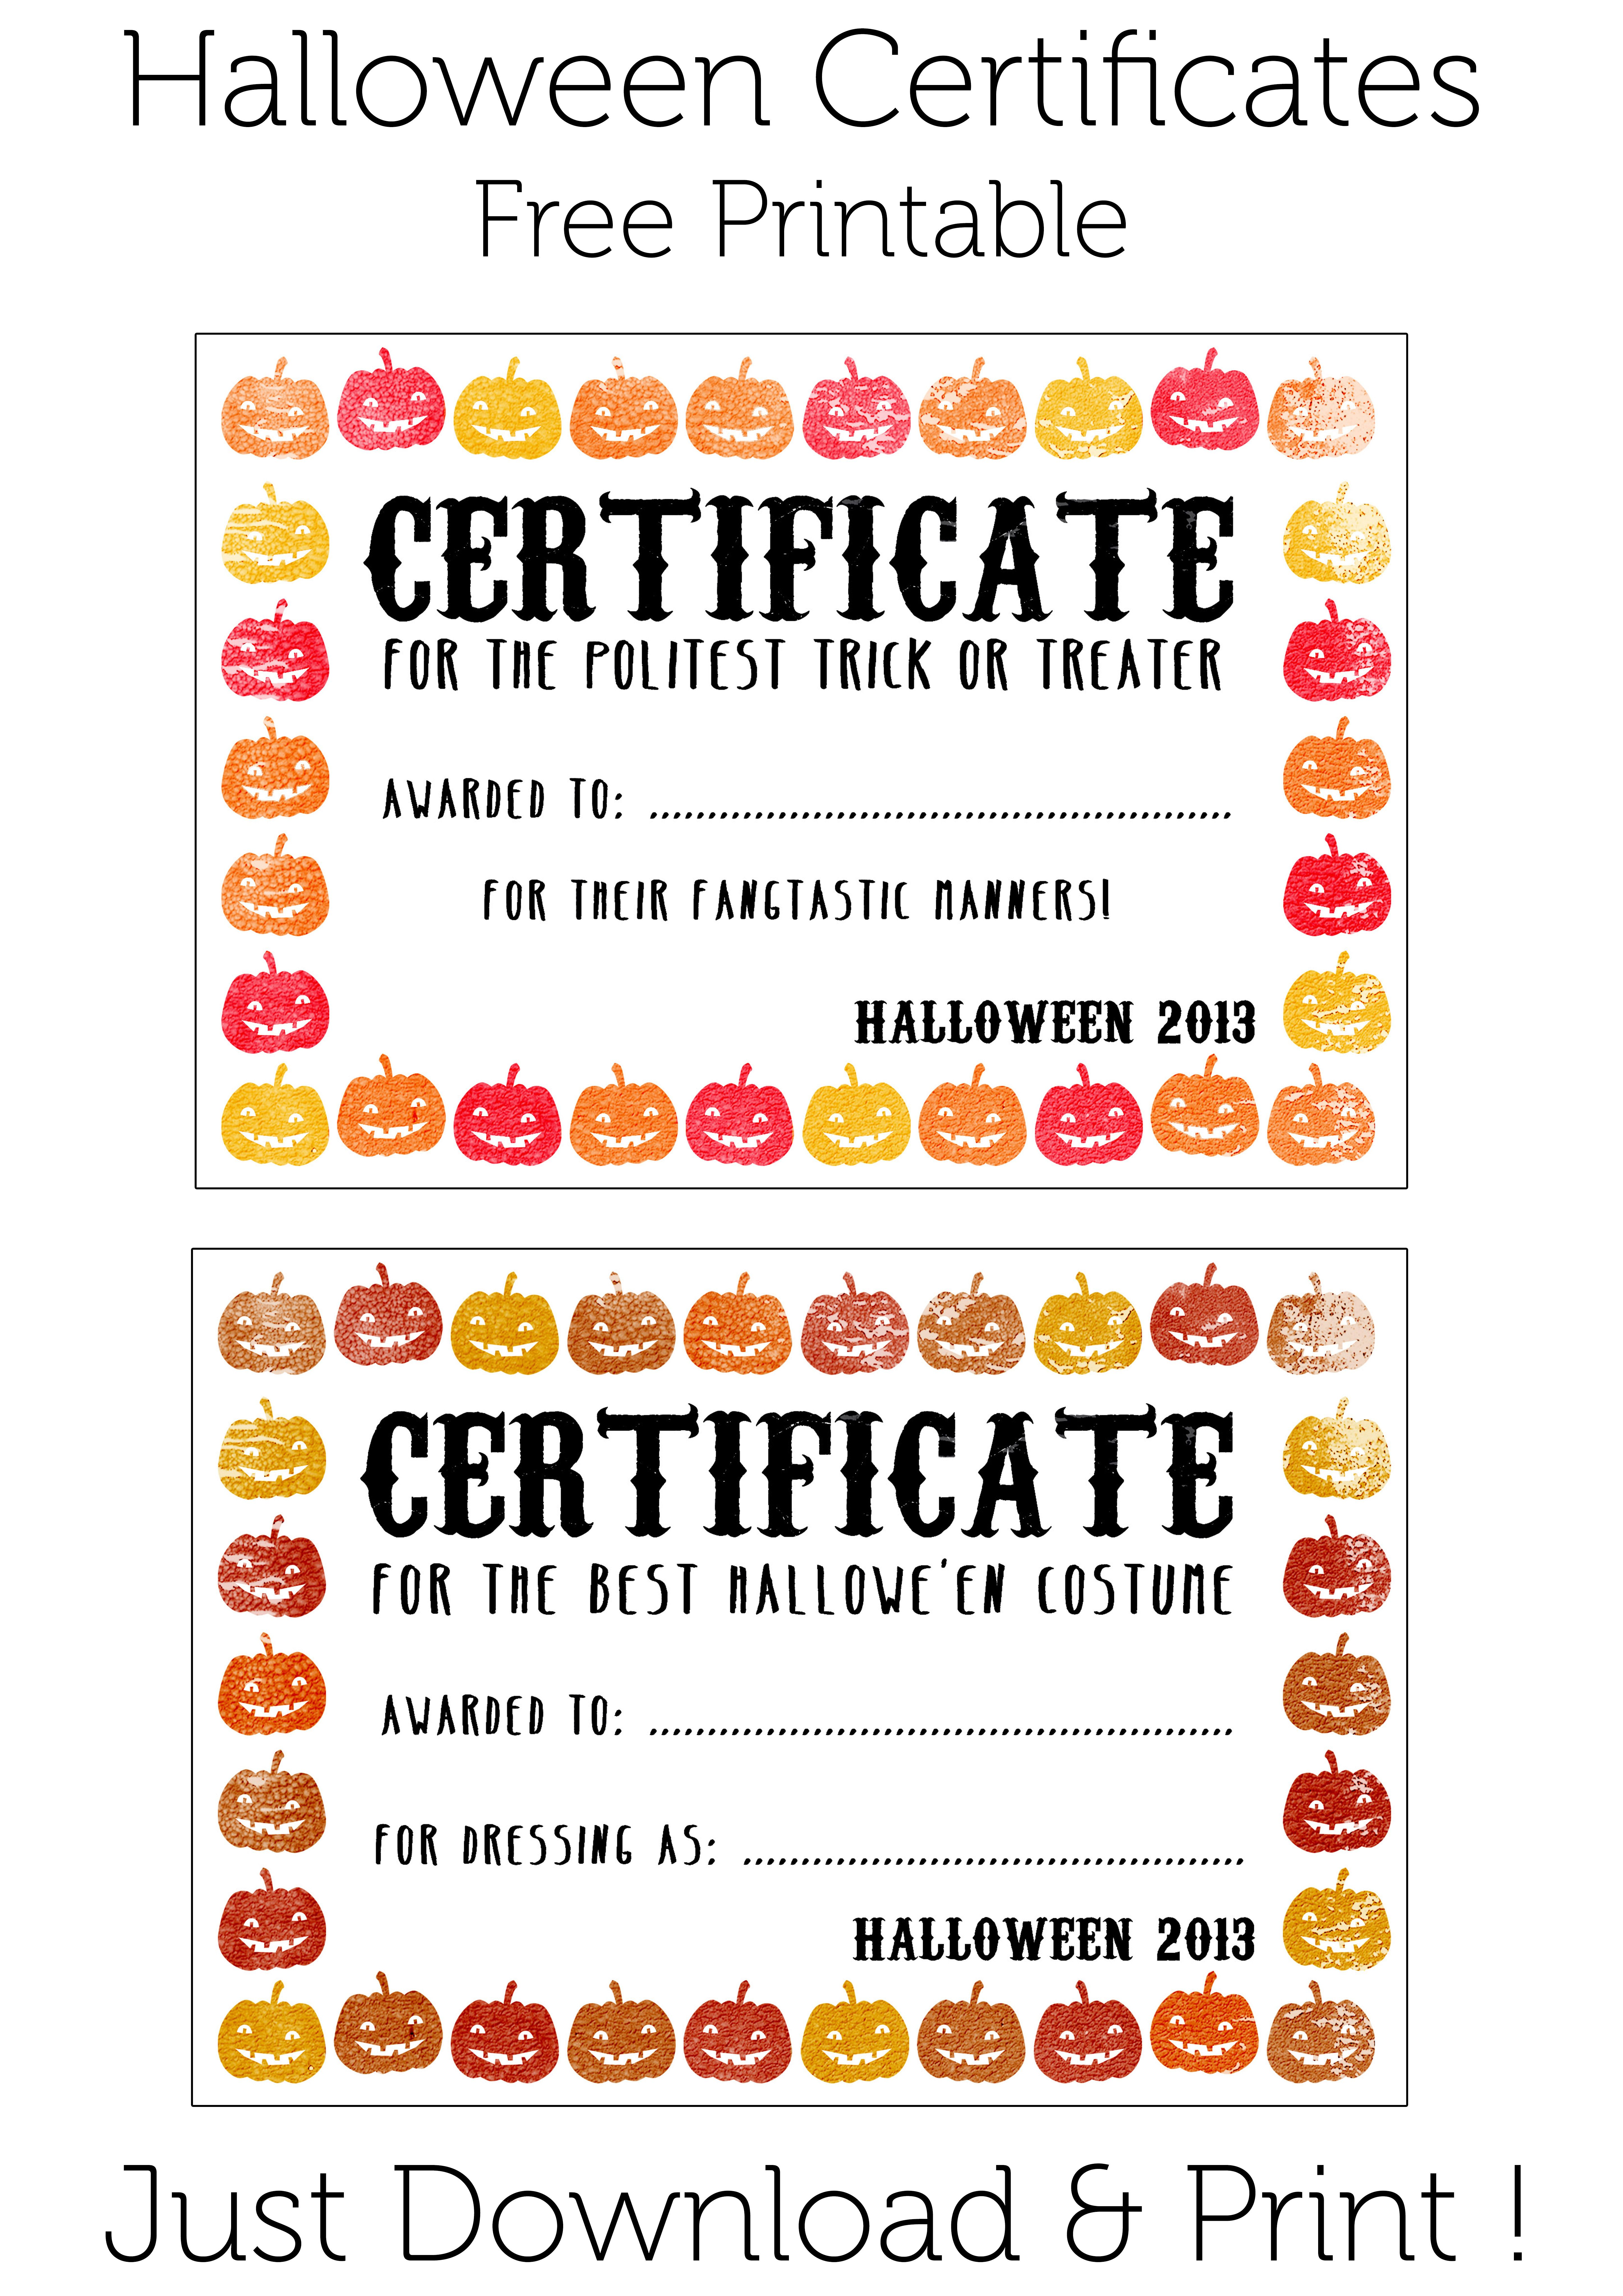 Halloween Certificates Give Them Out To Trick O